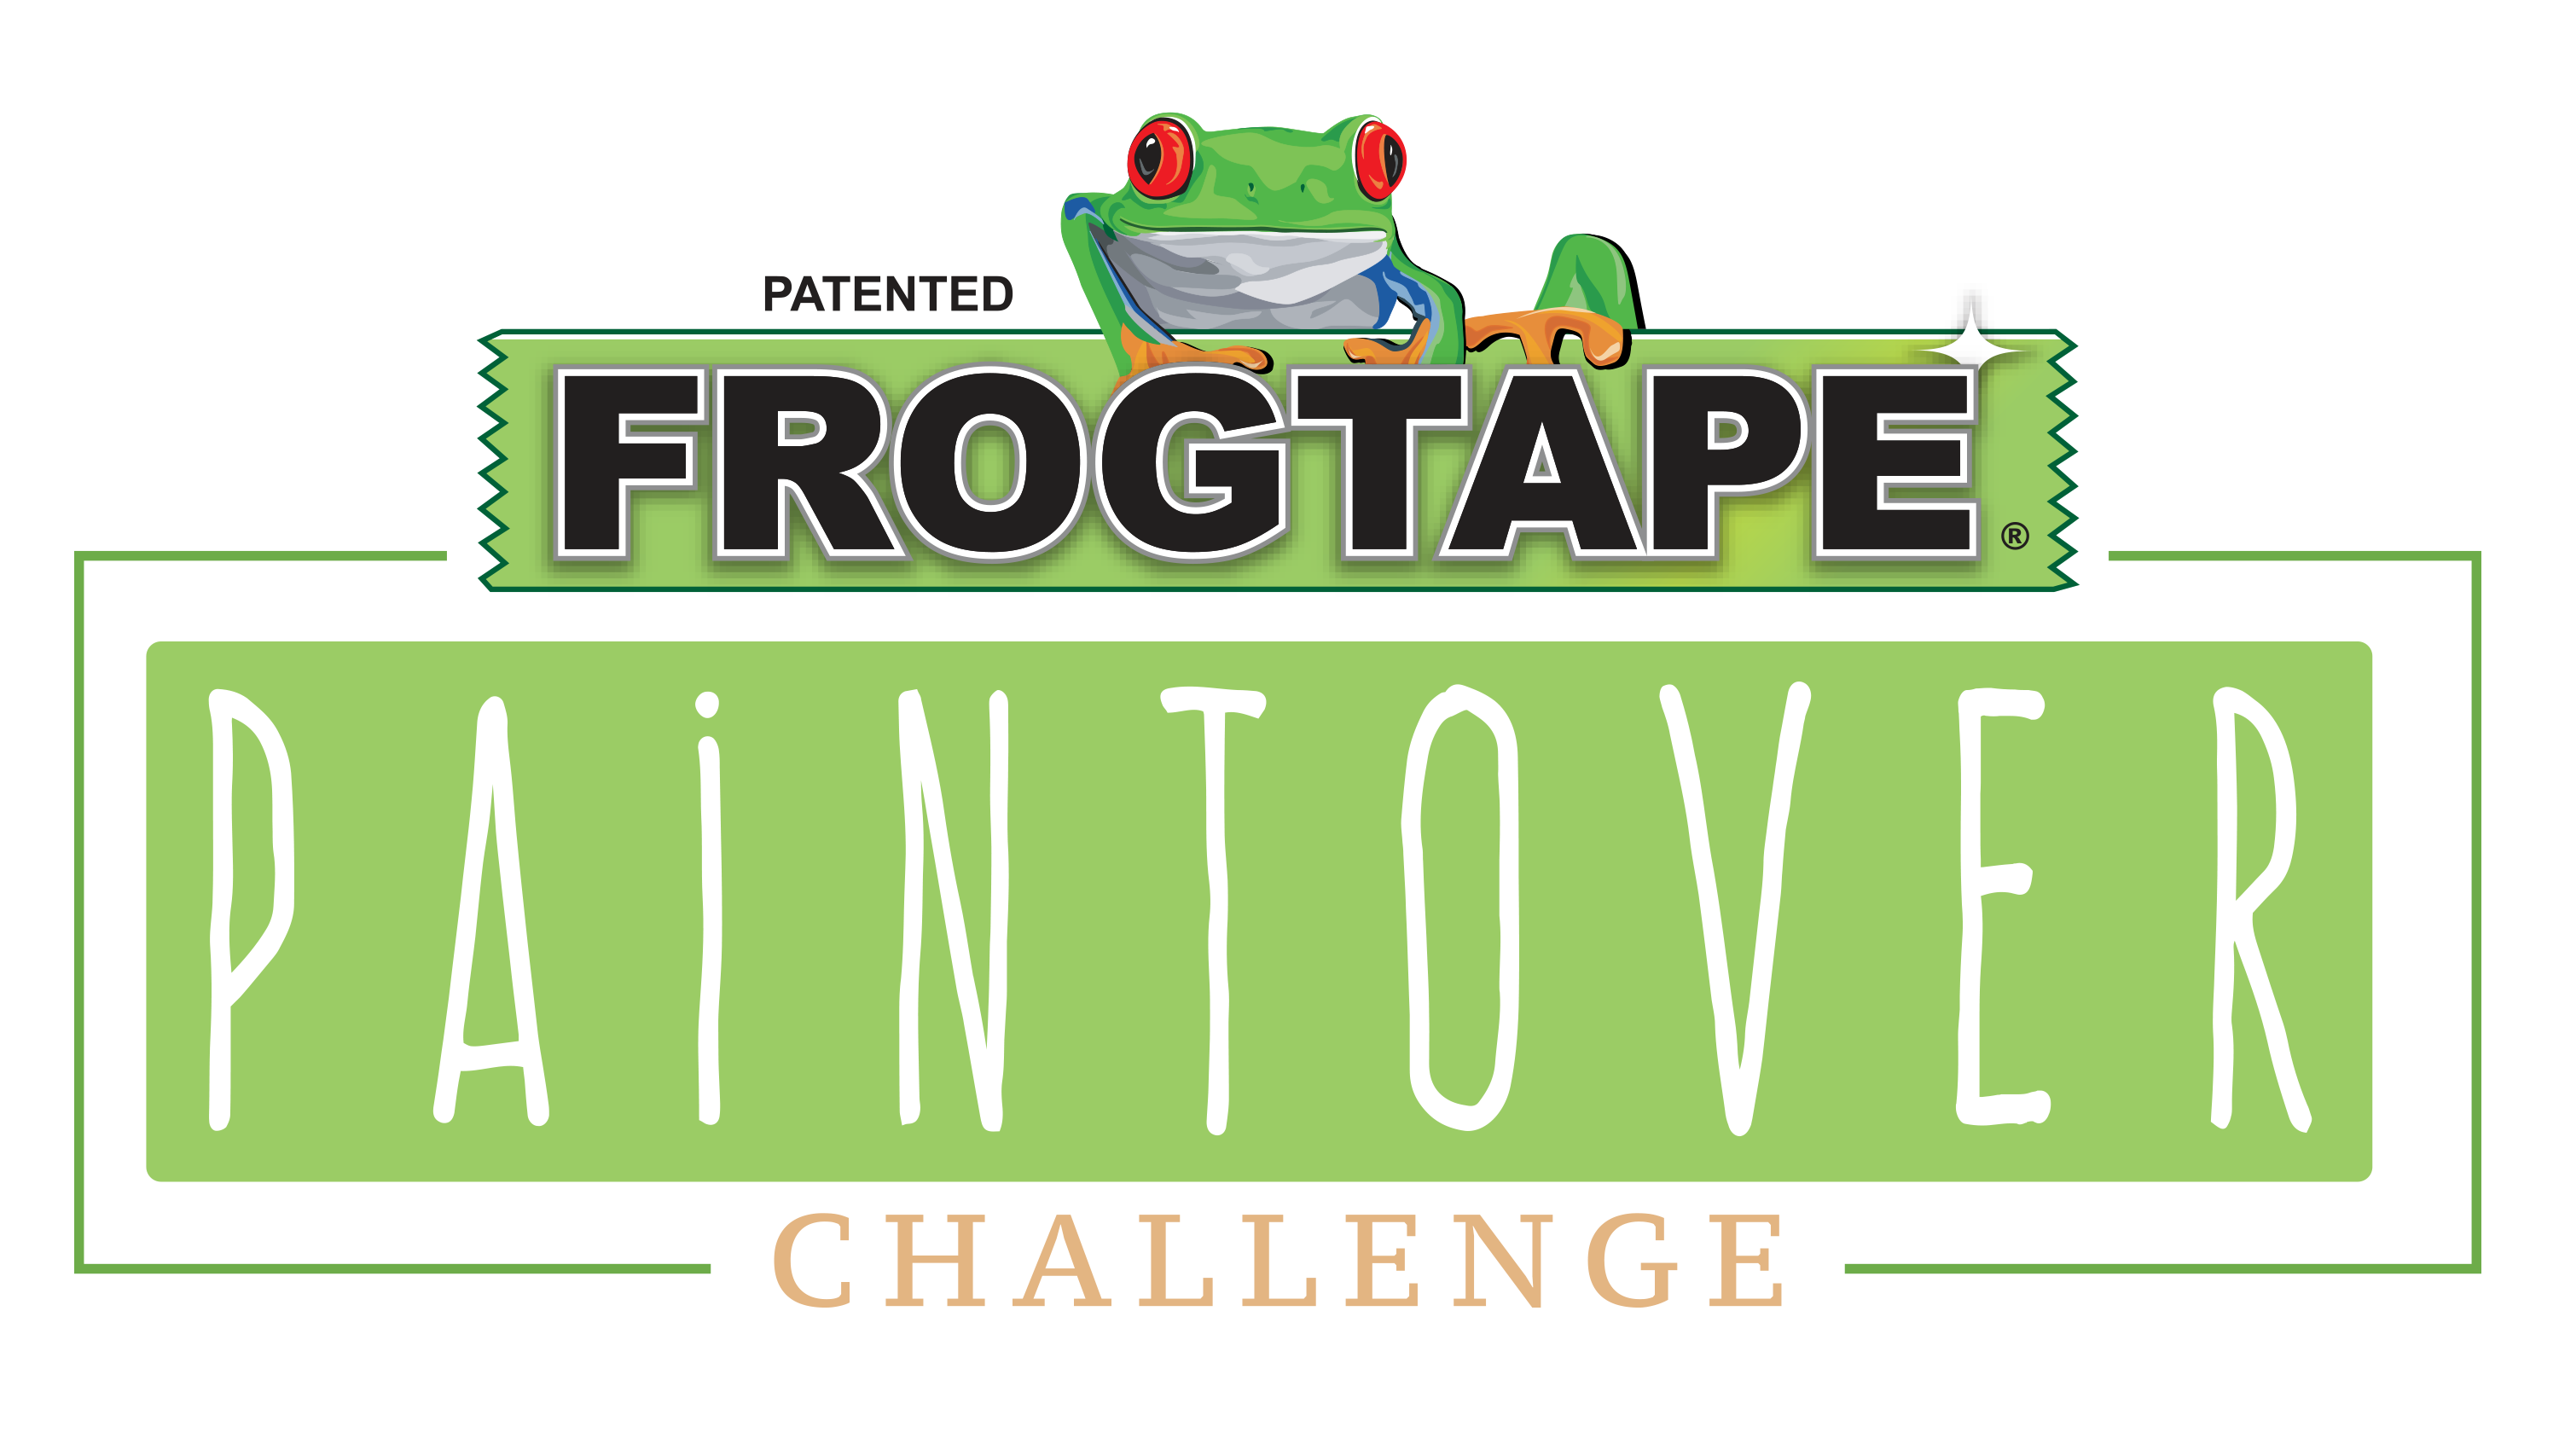 PaintOver Challange FINAL_LOGO-DARK-FROG (1)